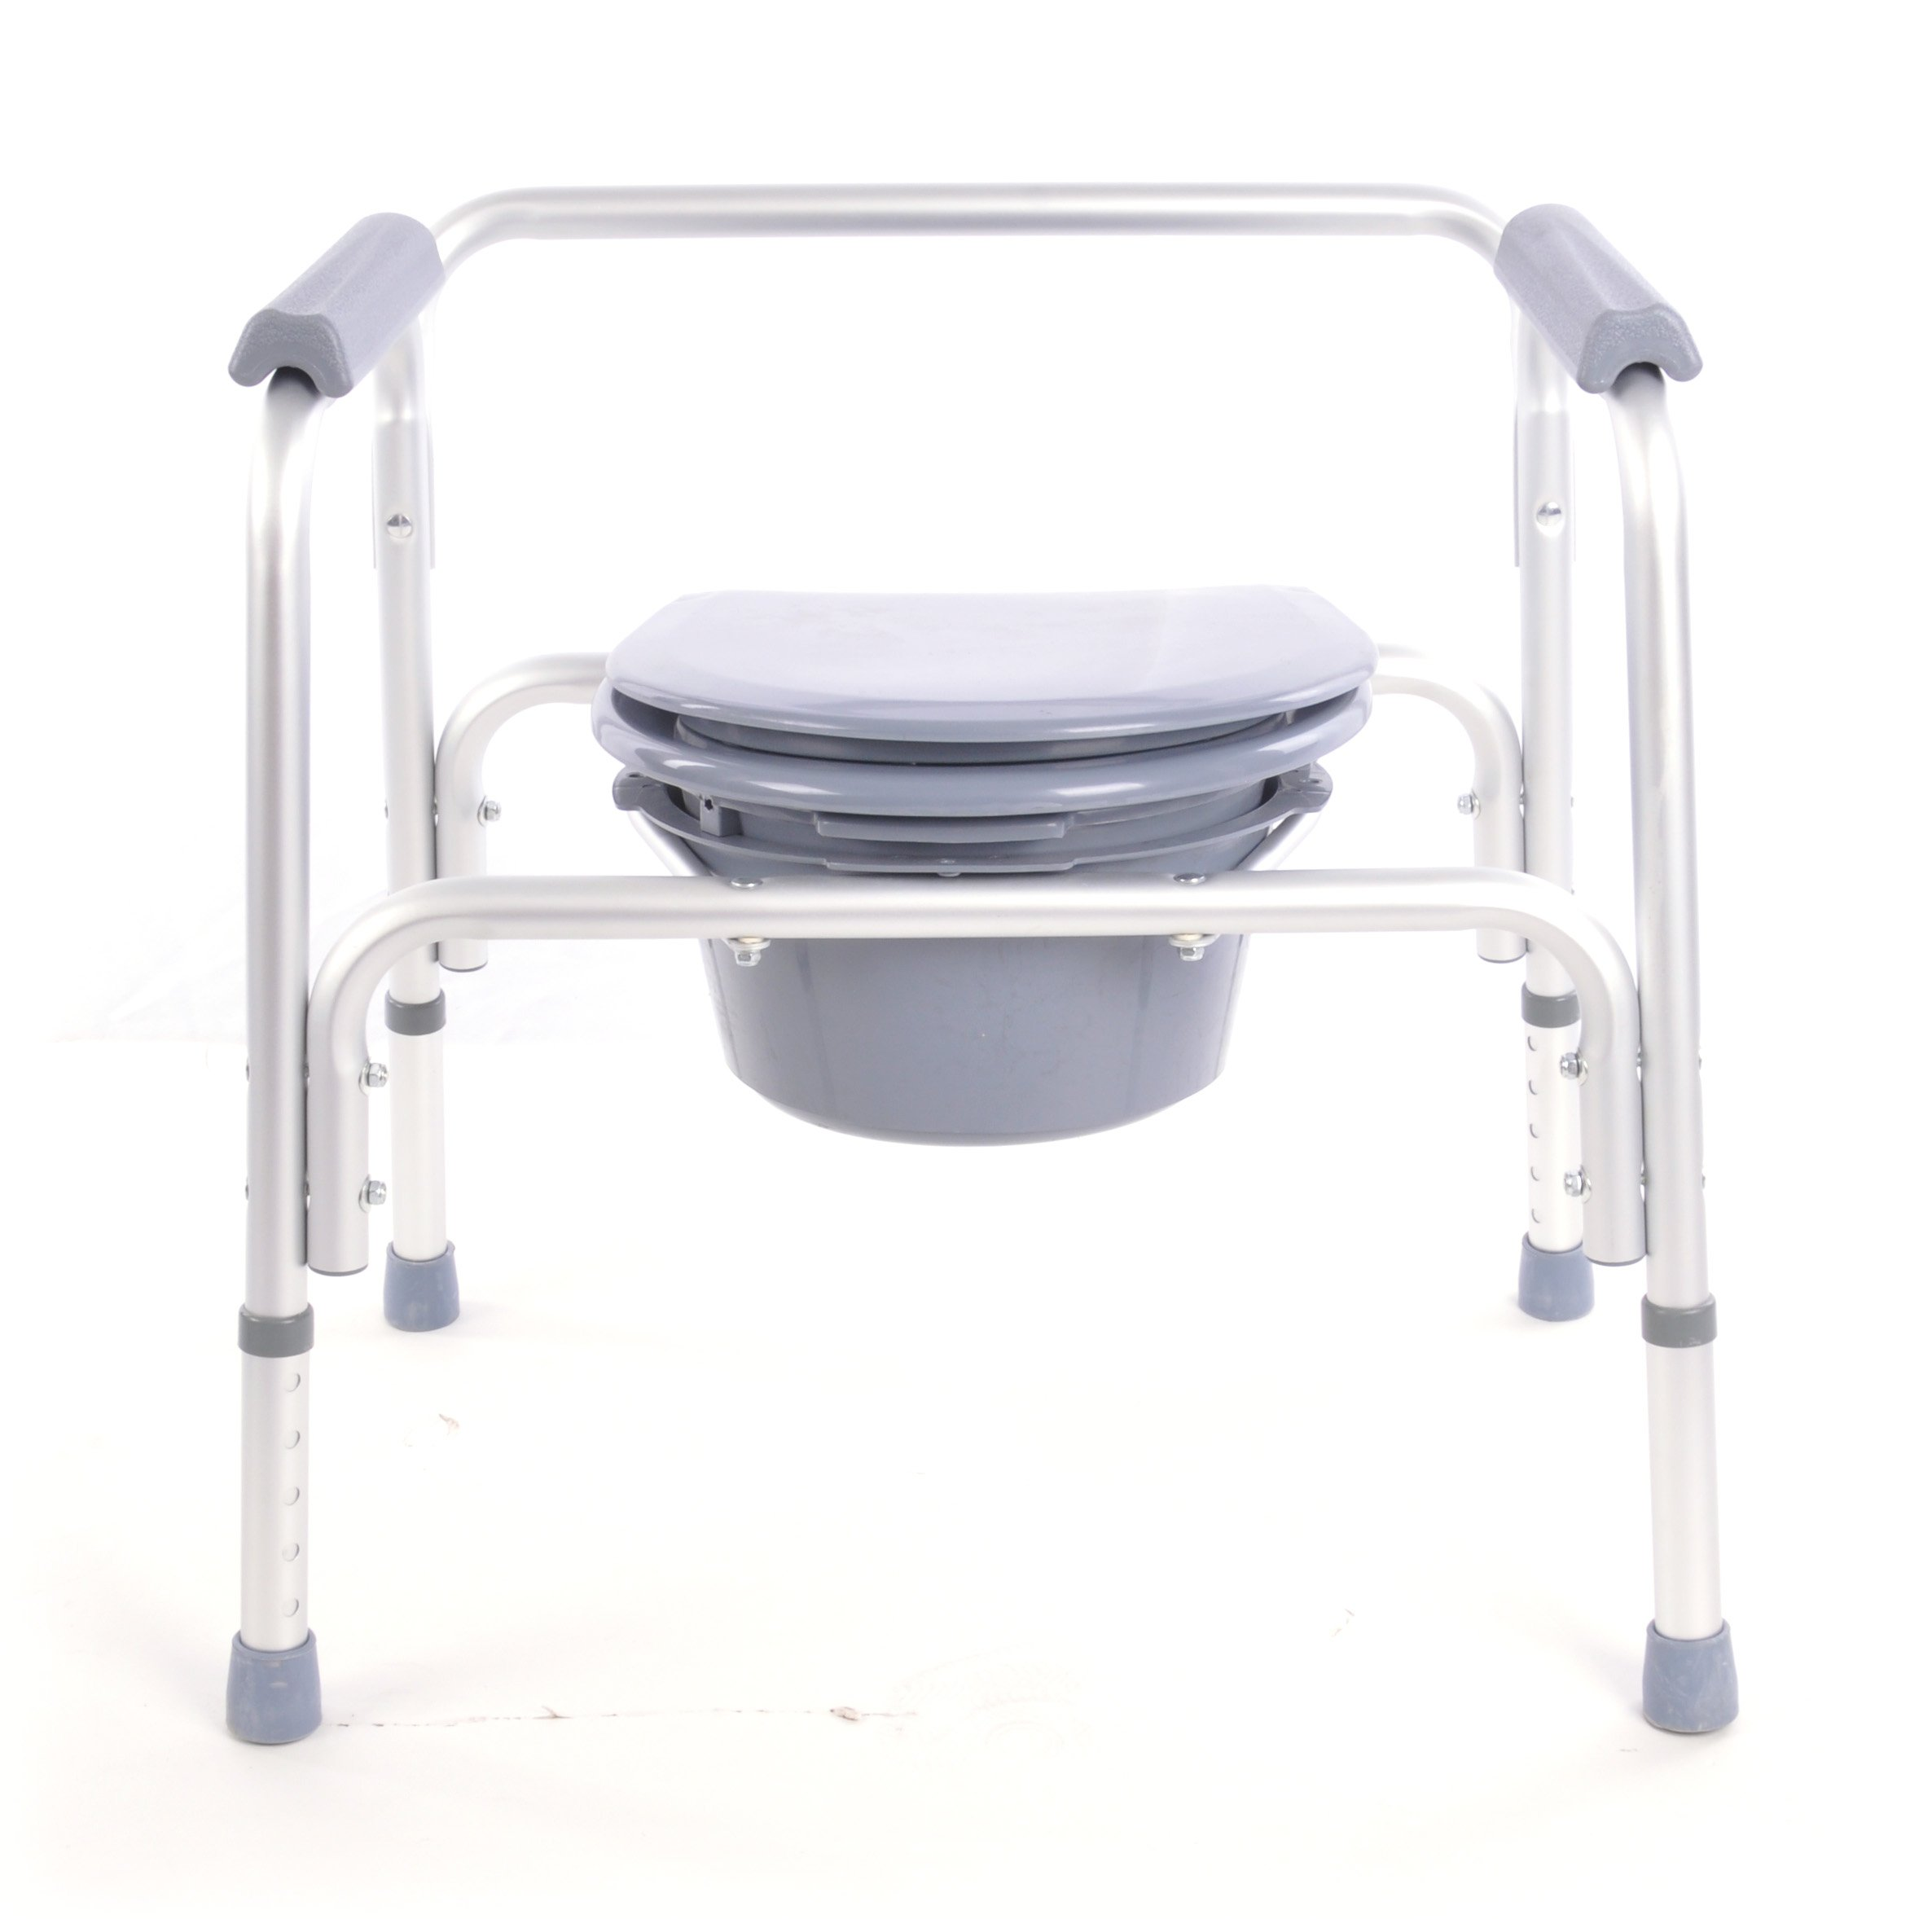 Benovate Economic Portable Toilet, Bedside Commode Chair, Heavy-Duty Steel Commode Toilet Chair, Medical Commode with with Bucket and Splash Guard, Adjustable Height